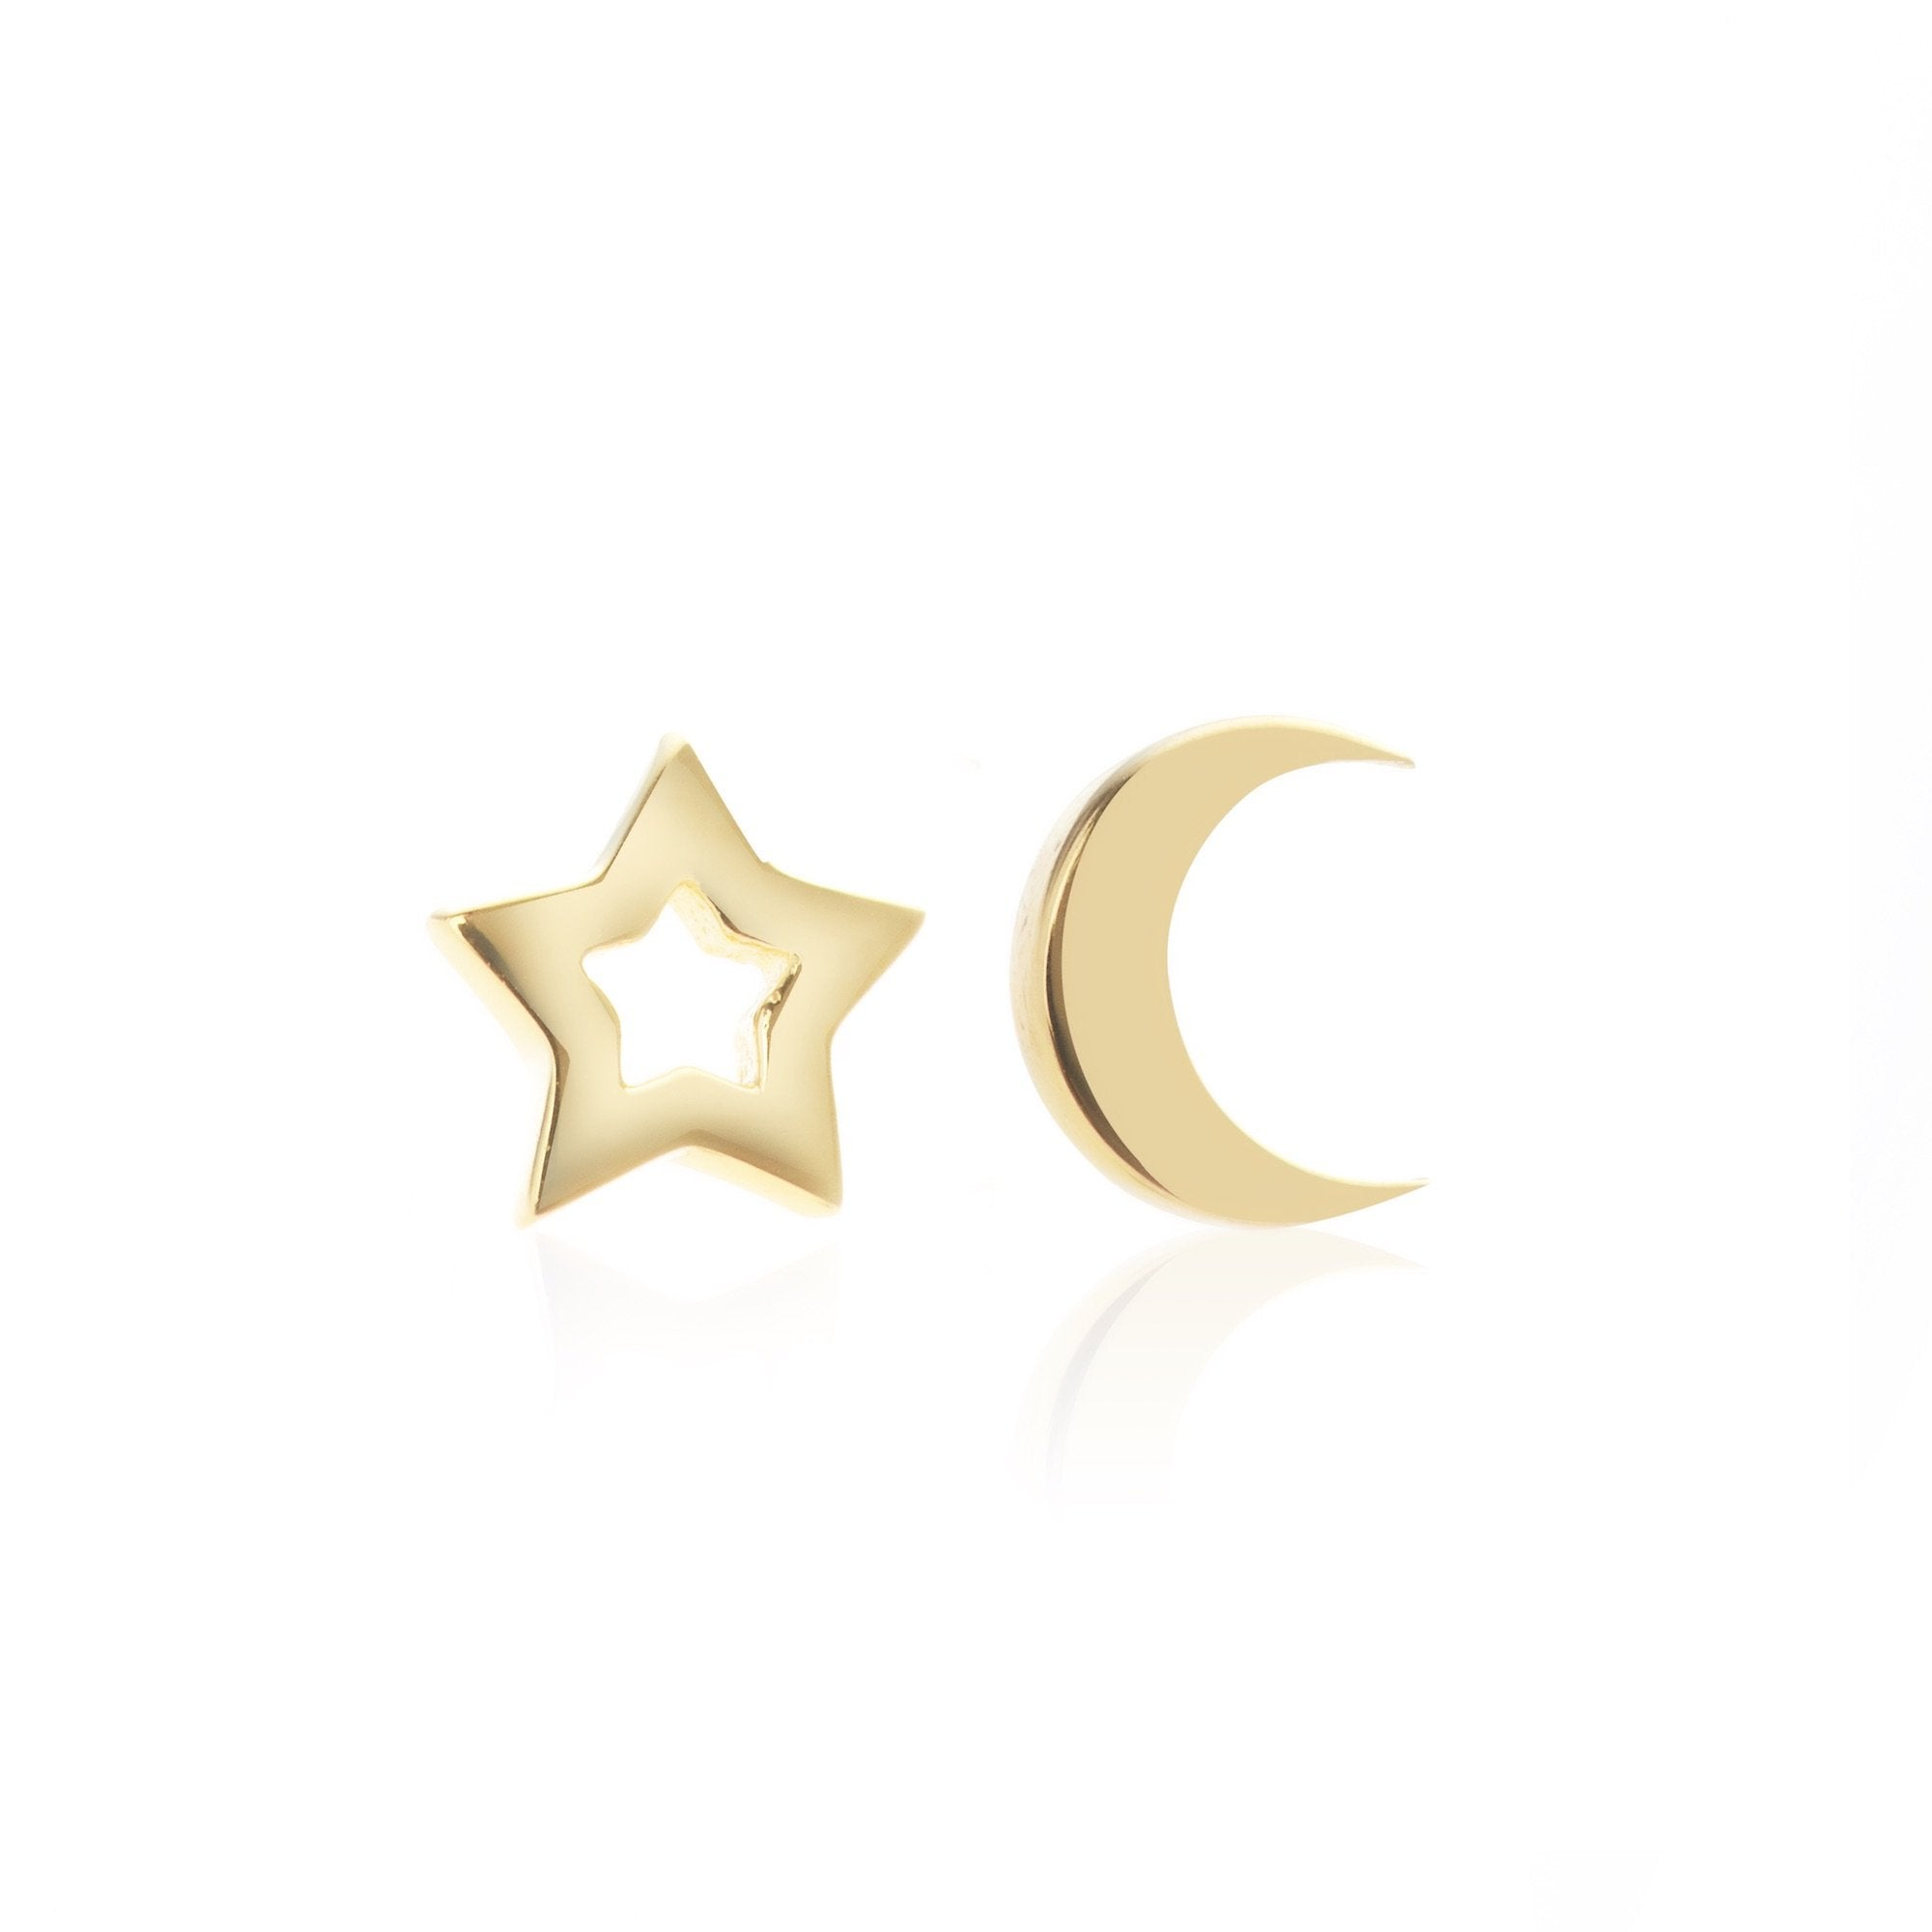 Silk & Steel Jewellery Superfine Gold Star and Moon Sterling Silver Stud Earrings